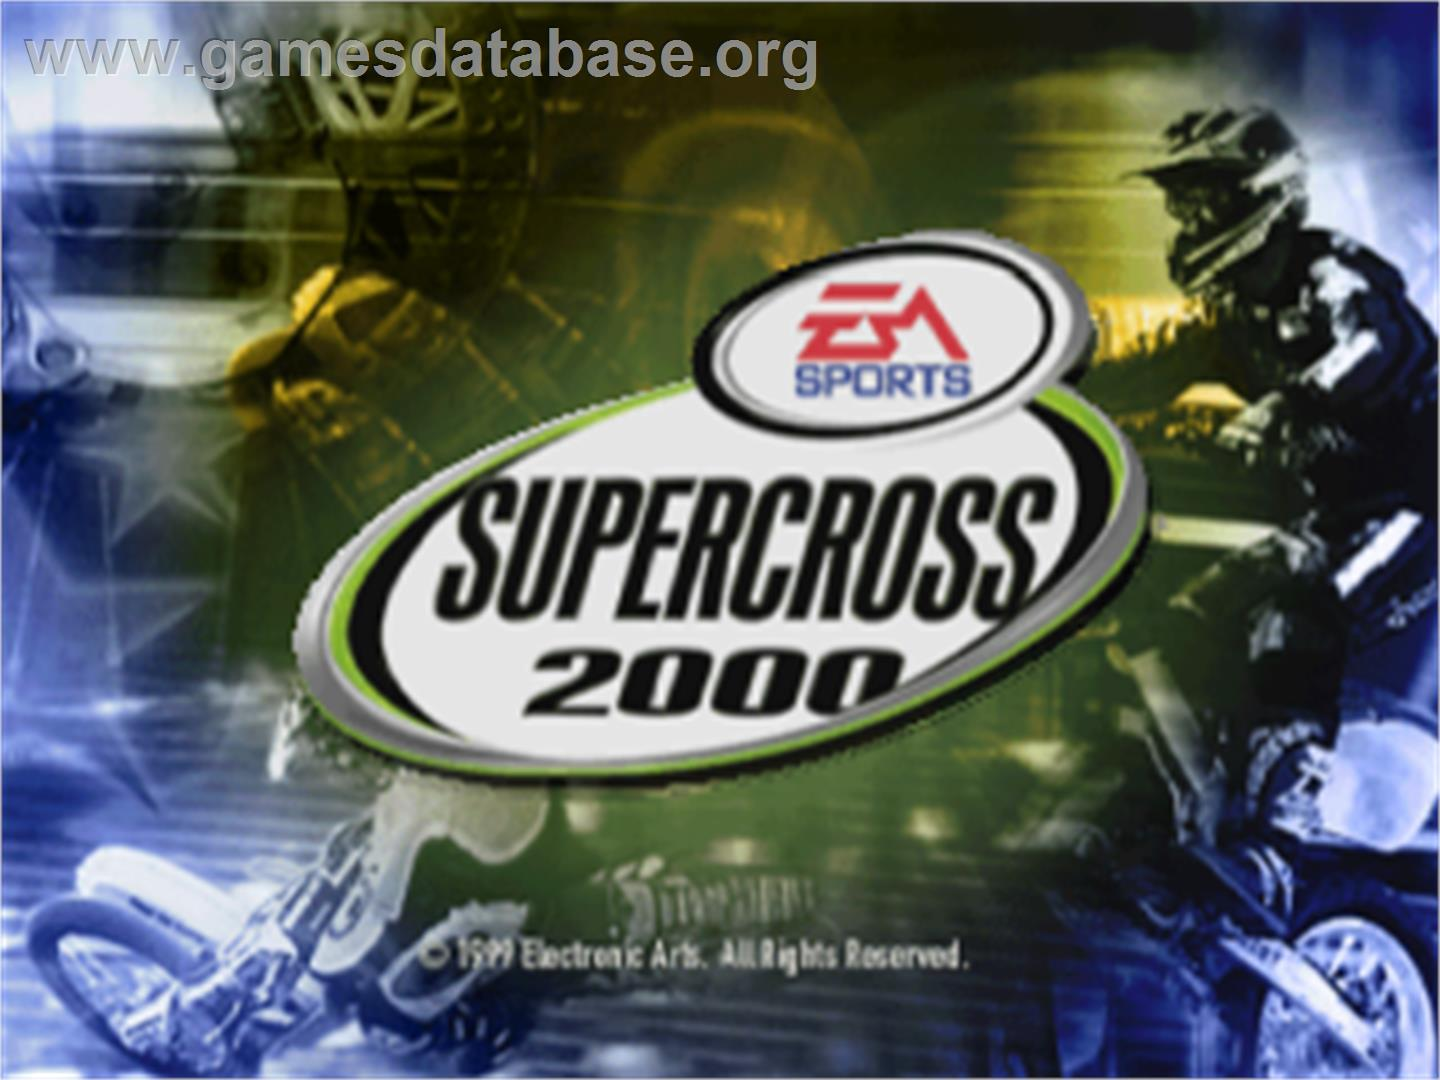 Supercross 2000 - Sony Playstation - Artwork - Title Screen